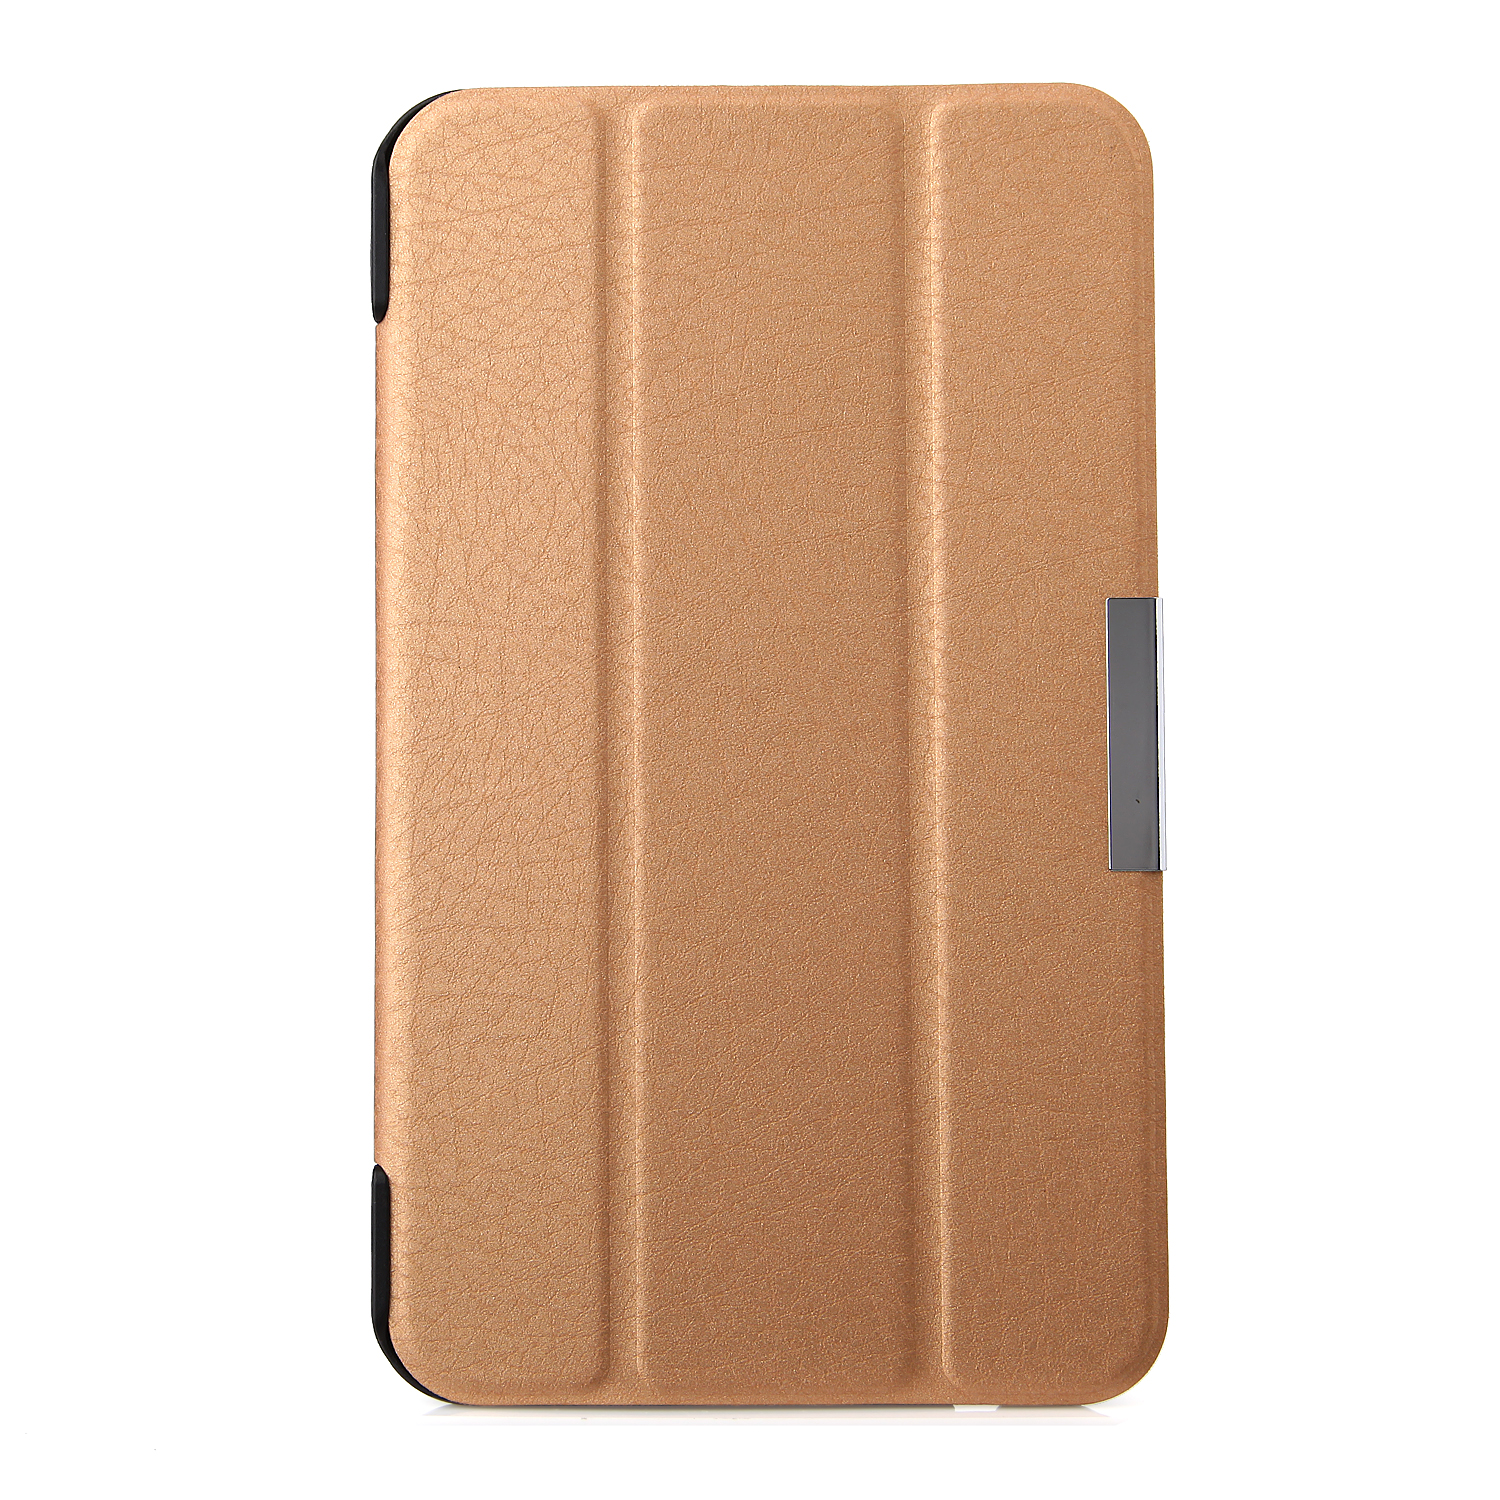 Protective PU Leather Stand Case Cover for FonePad 7 Tablet PC Golden